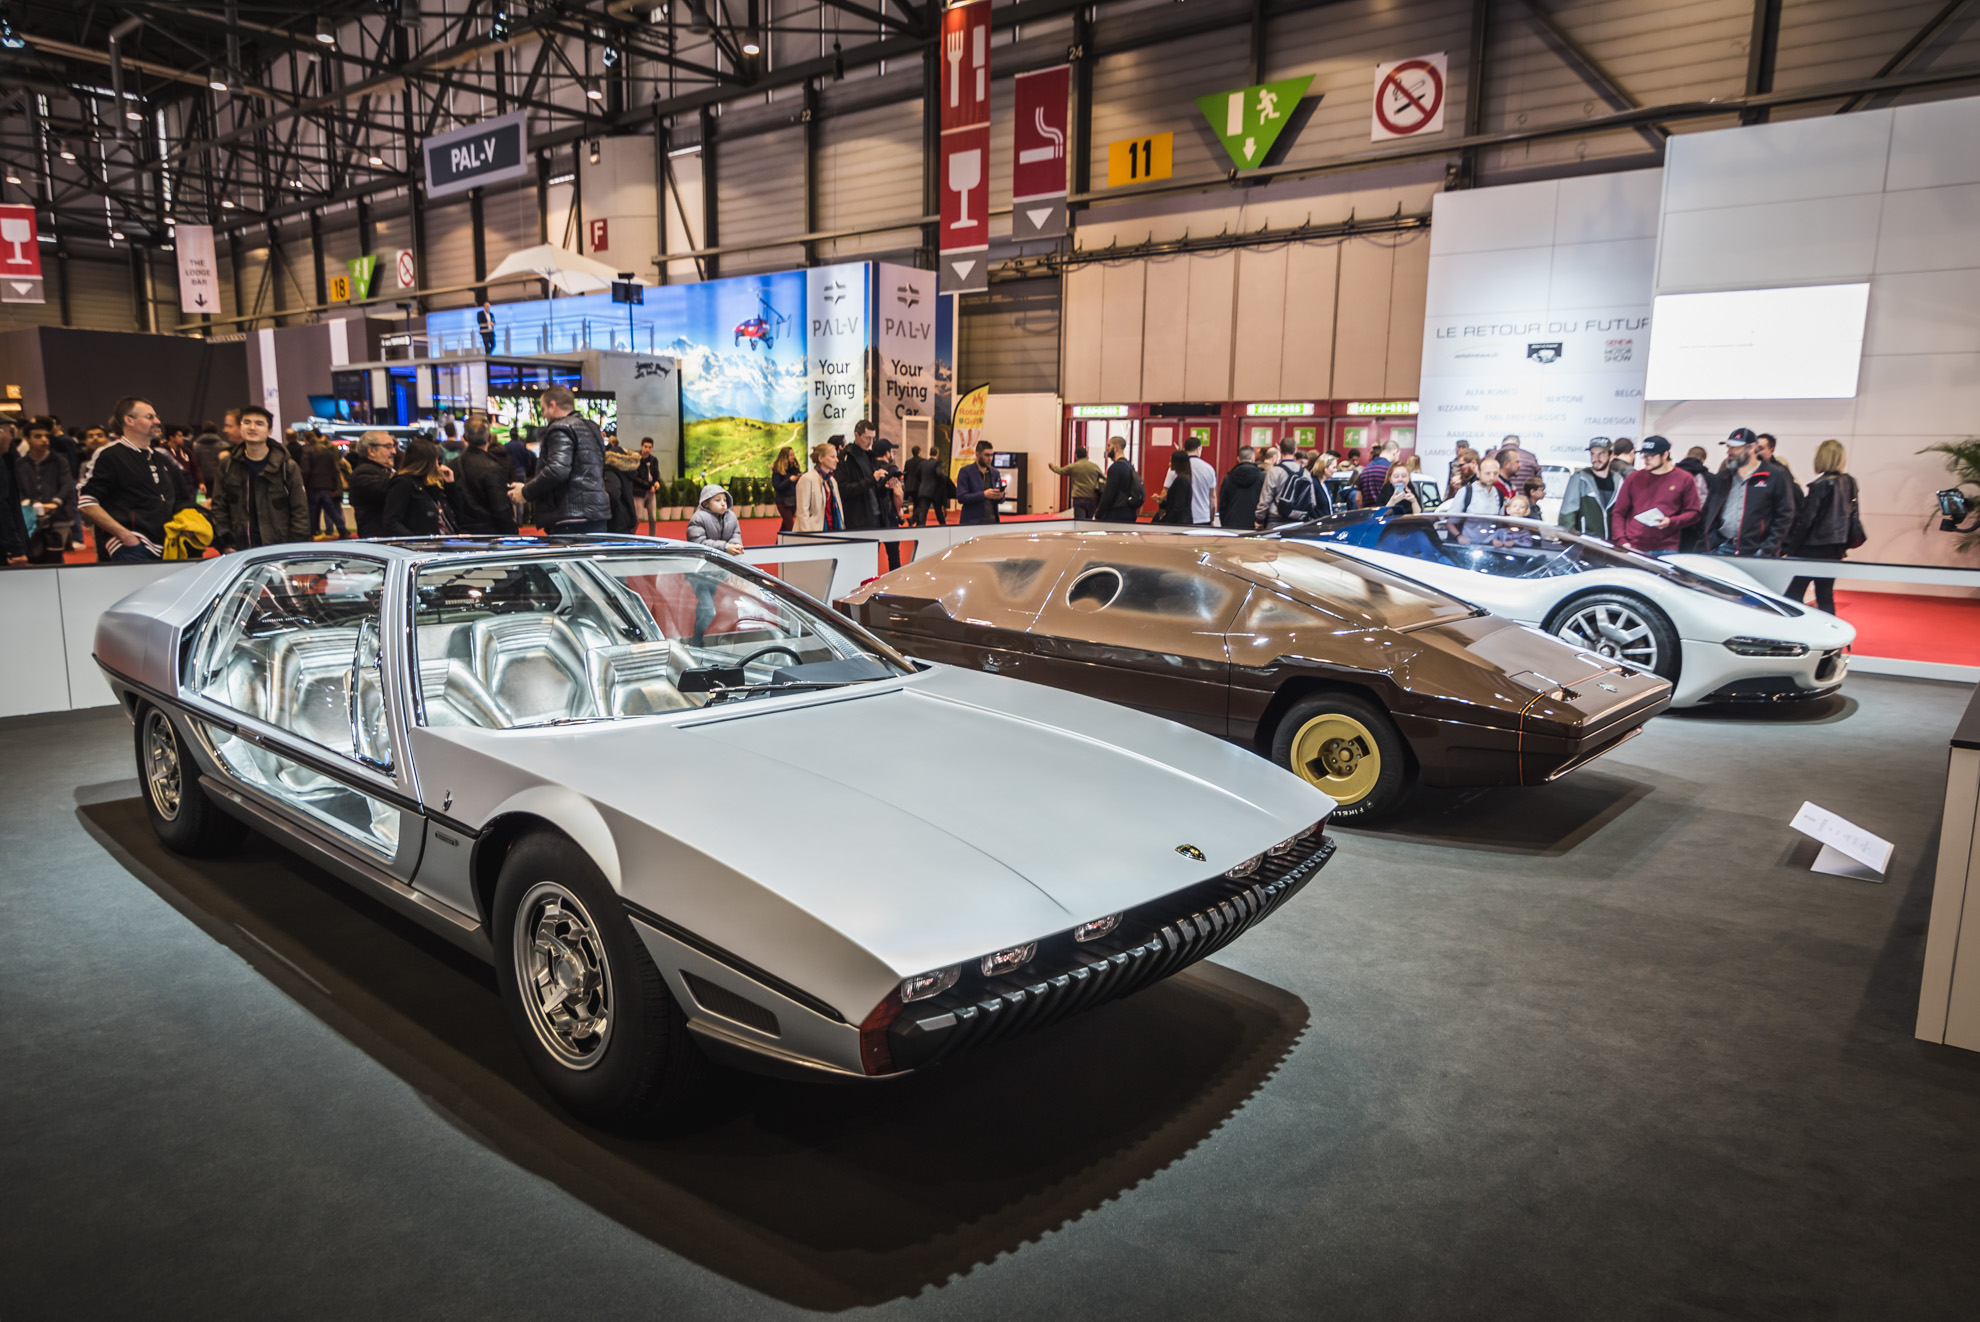 geneva-international-motor-show-igors-sinitsins-12